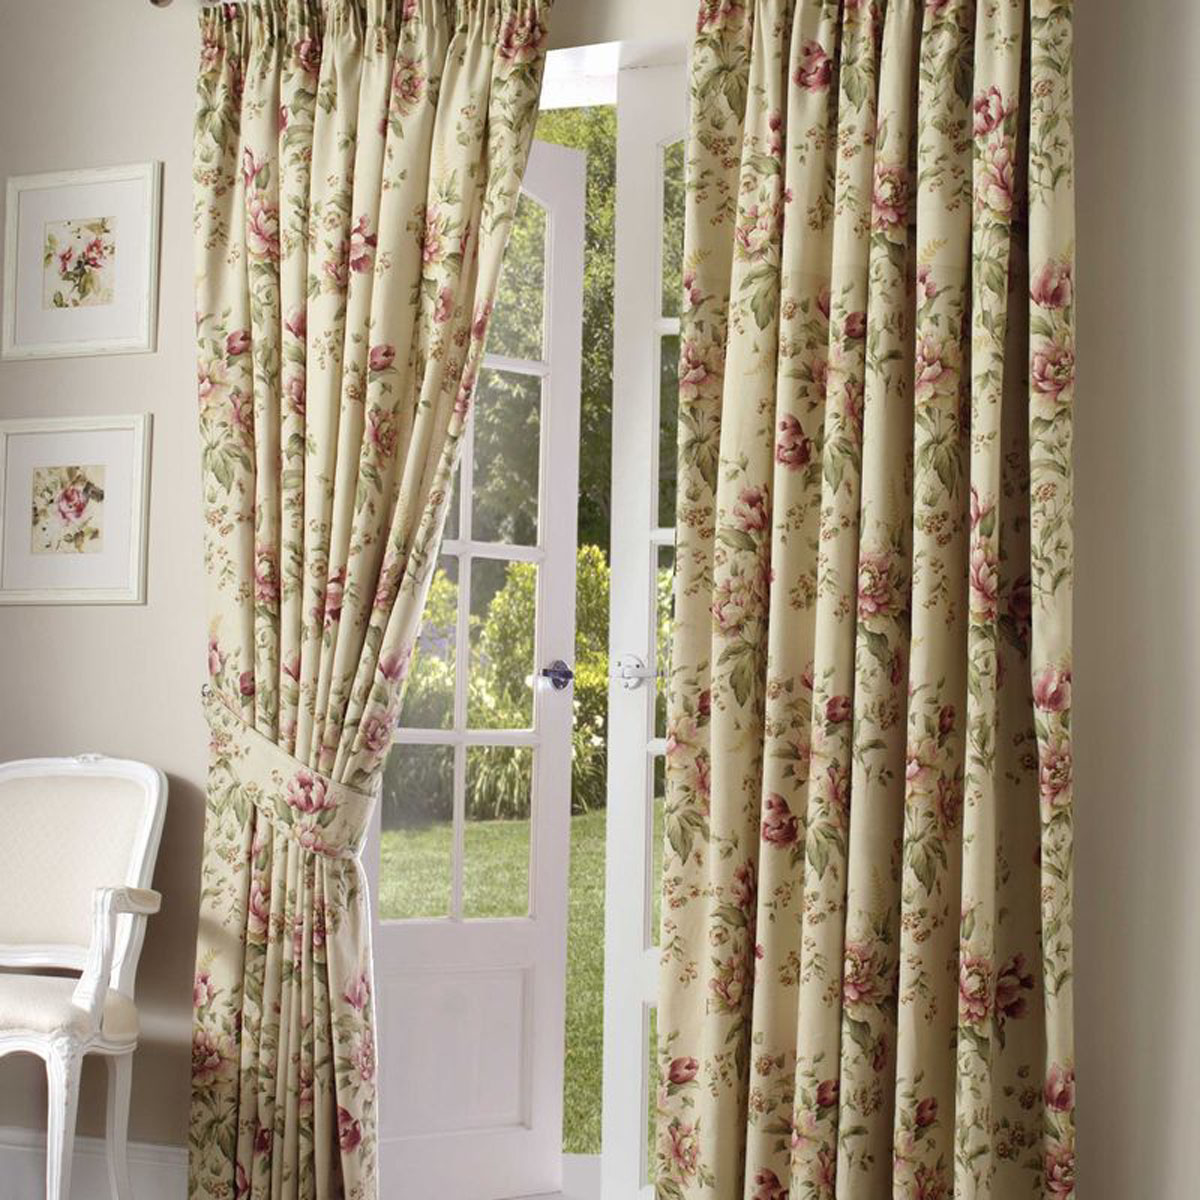 Retro Curtains And Drapes Curtain Design